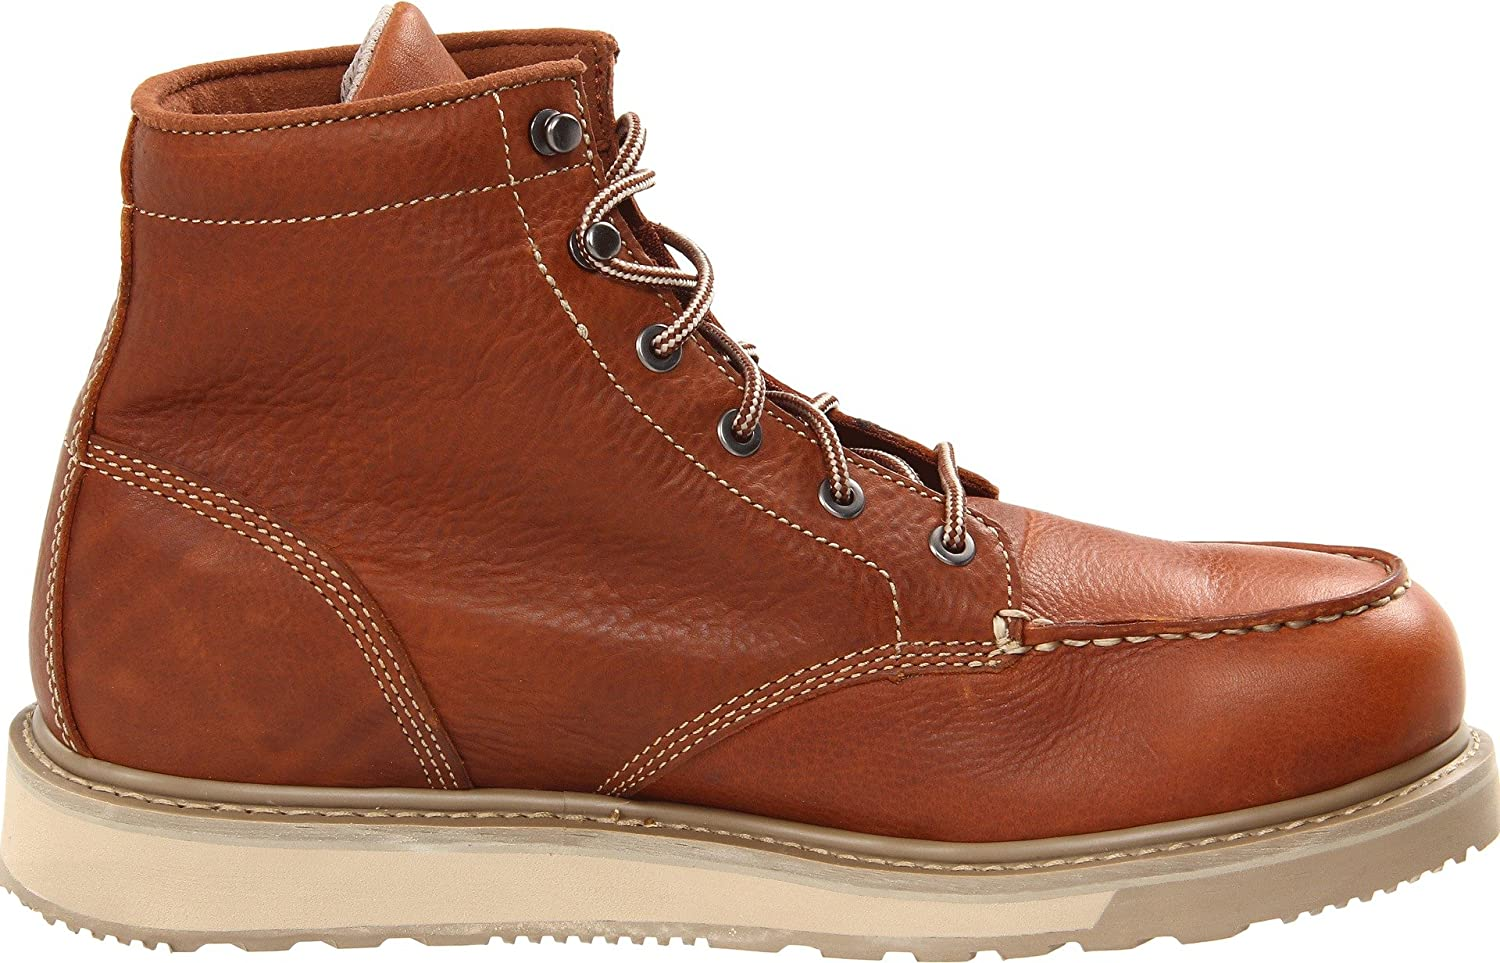 Timberland PRO Wedge Sole Marrone